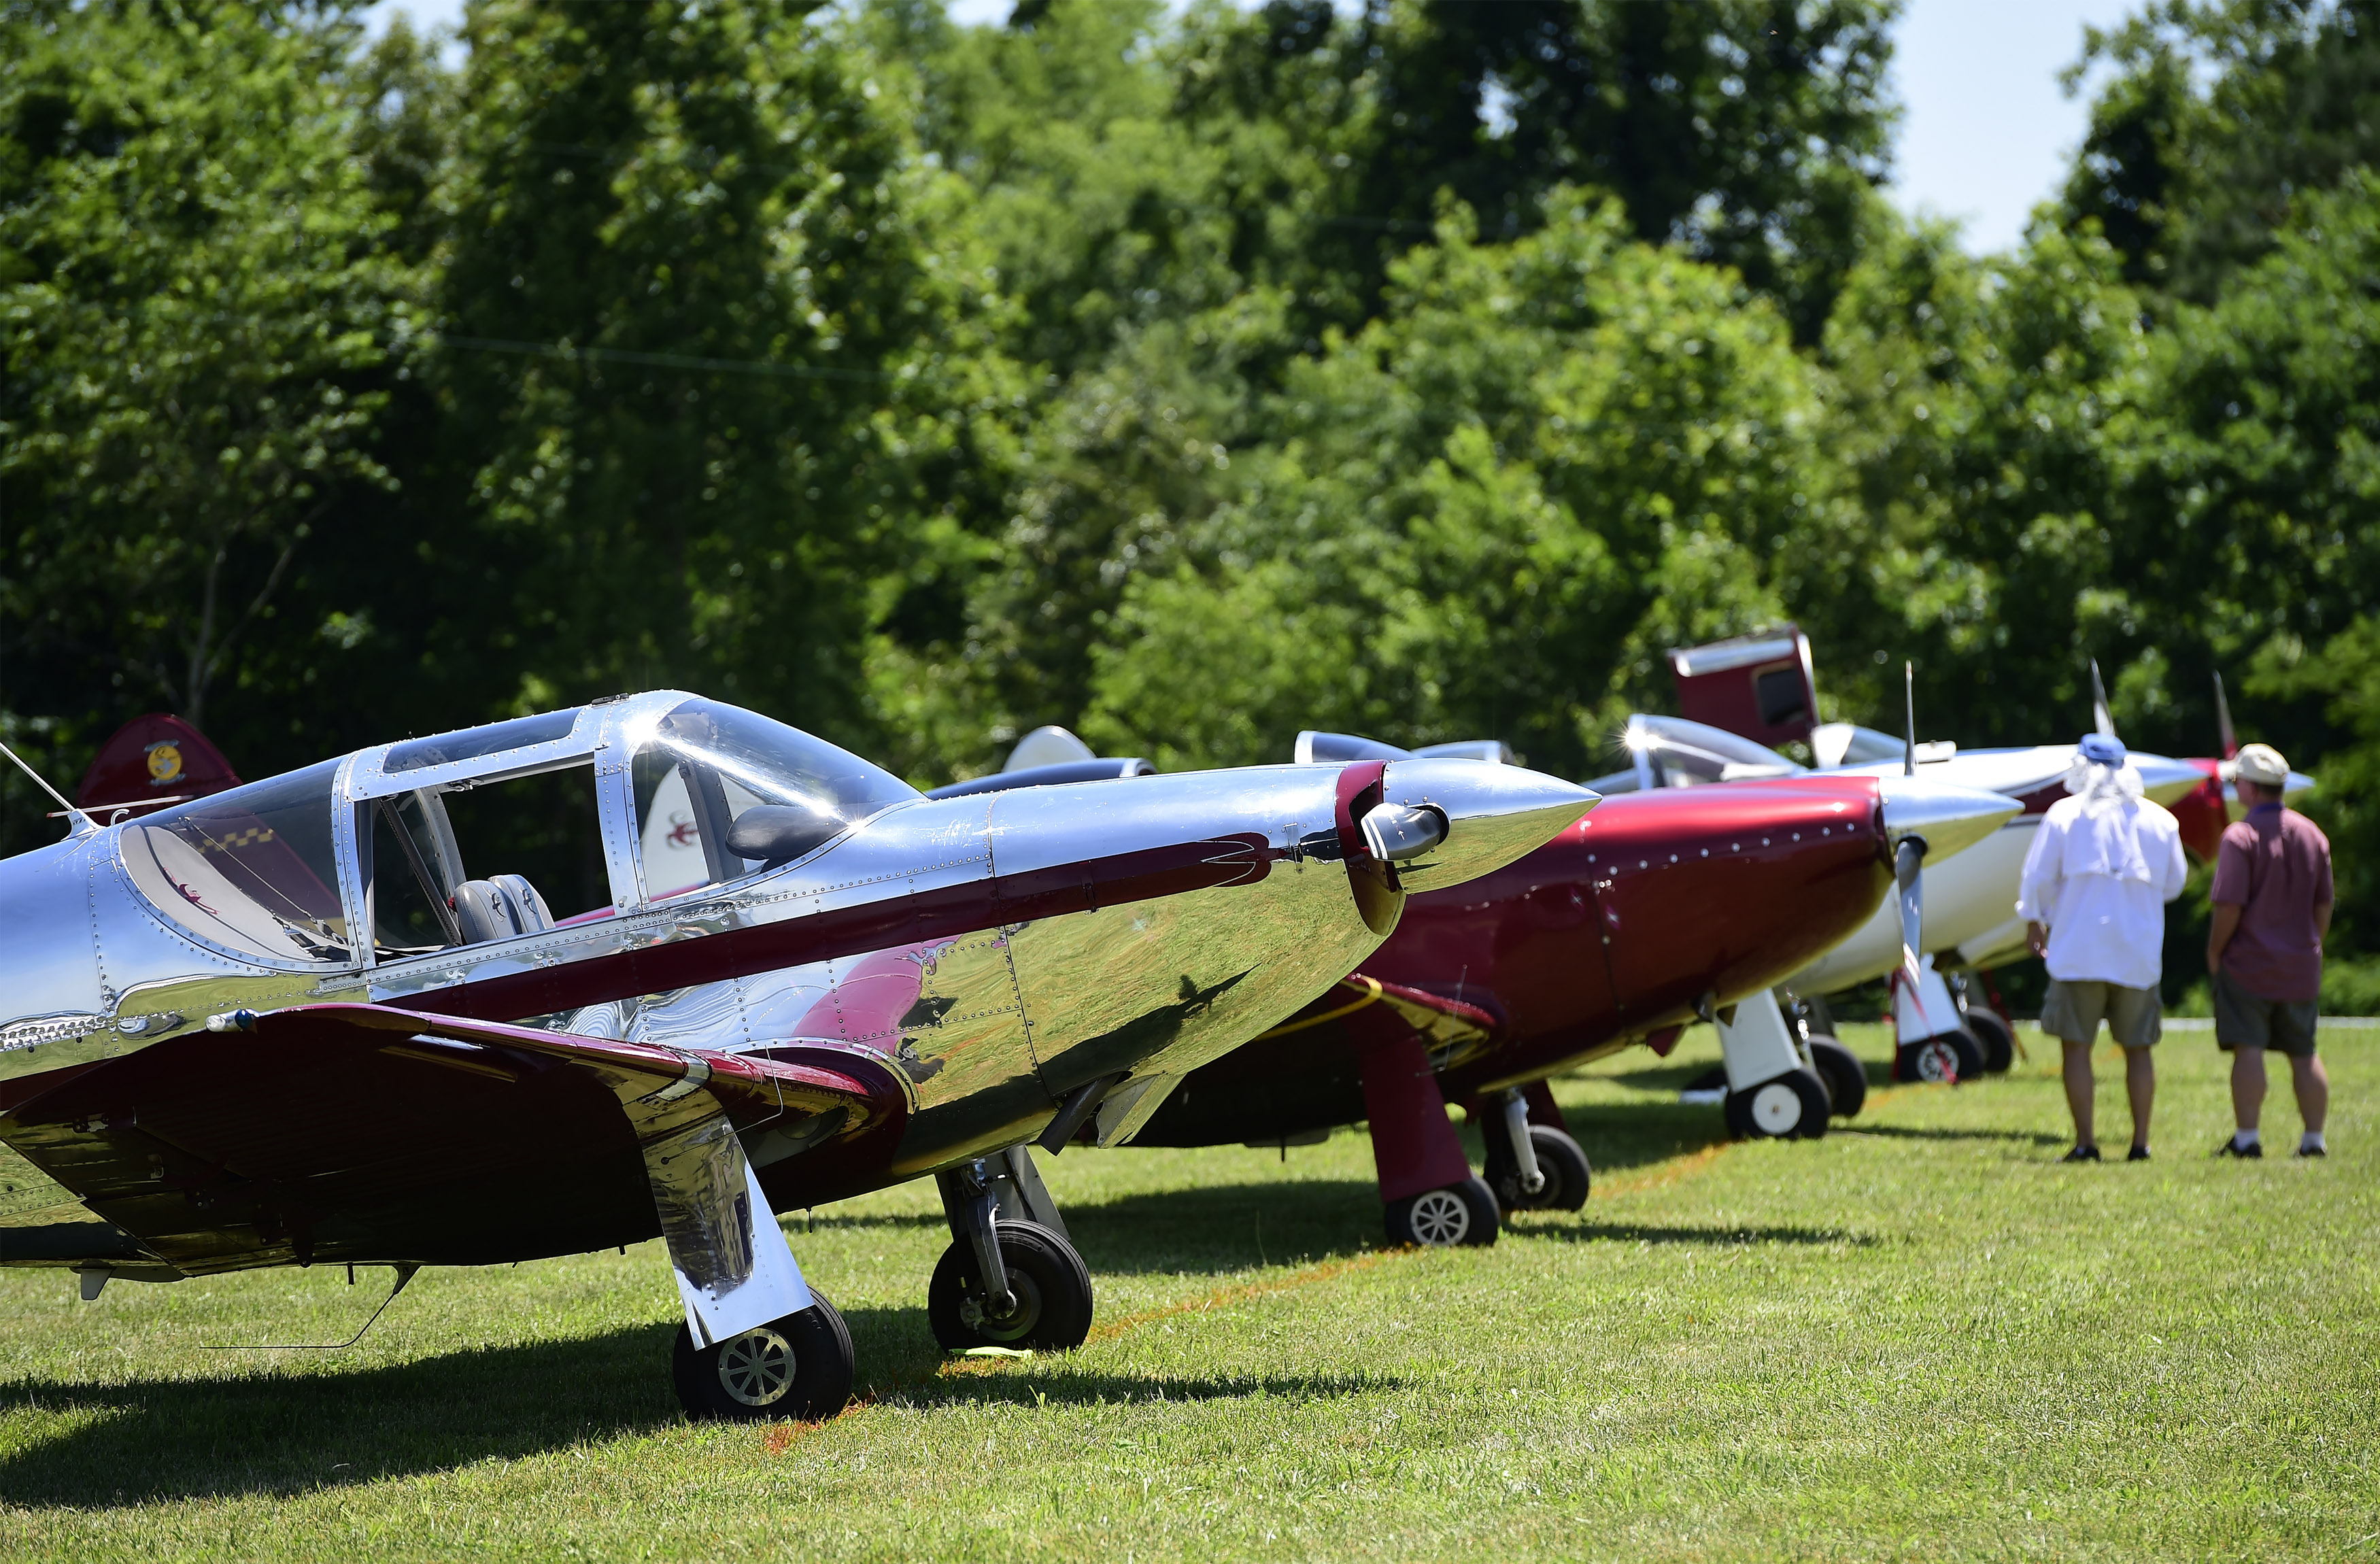 Nearly four dozen original or modified Temco and Globe Swift aircraft were on the flight line during the 2018 Swift National fly-in to help celebrate the fiftieth anniversary of the Swift Museum Foundation, in Athens, Tennessee, June 7-10, 2018. Photo by David Tulis.